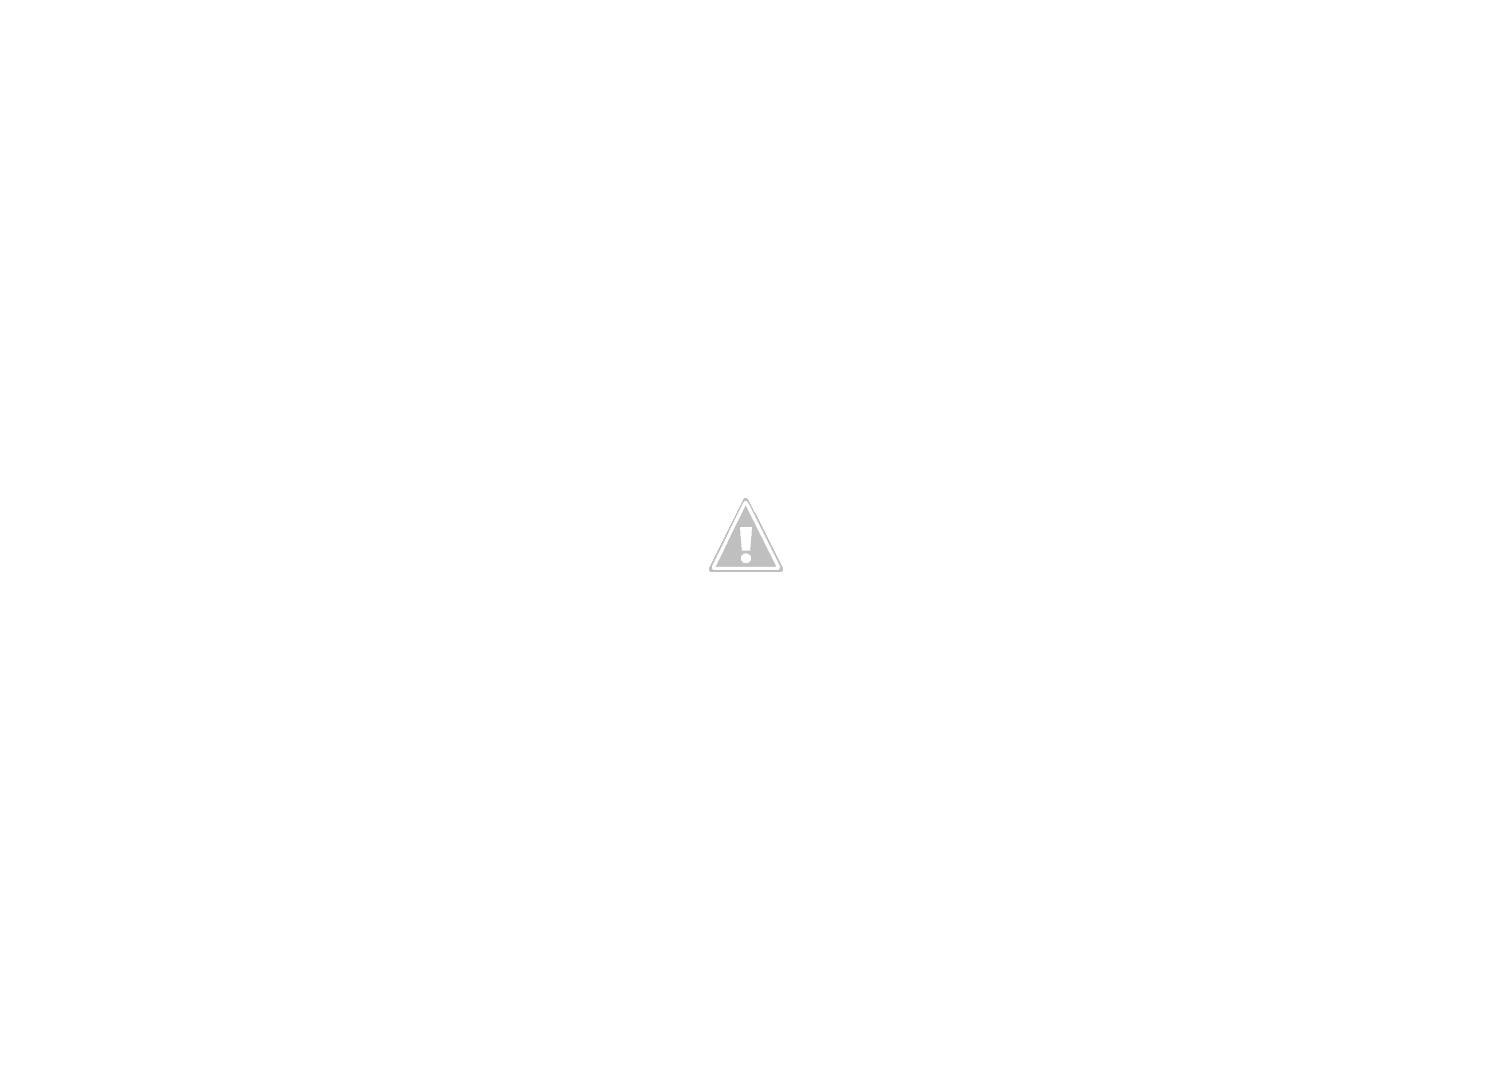 26.09.2017 - Student's party